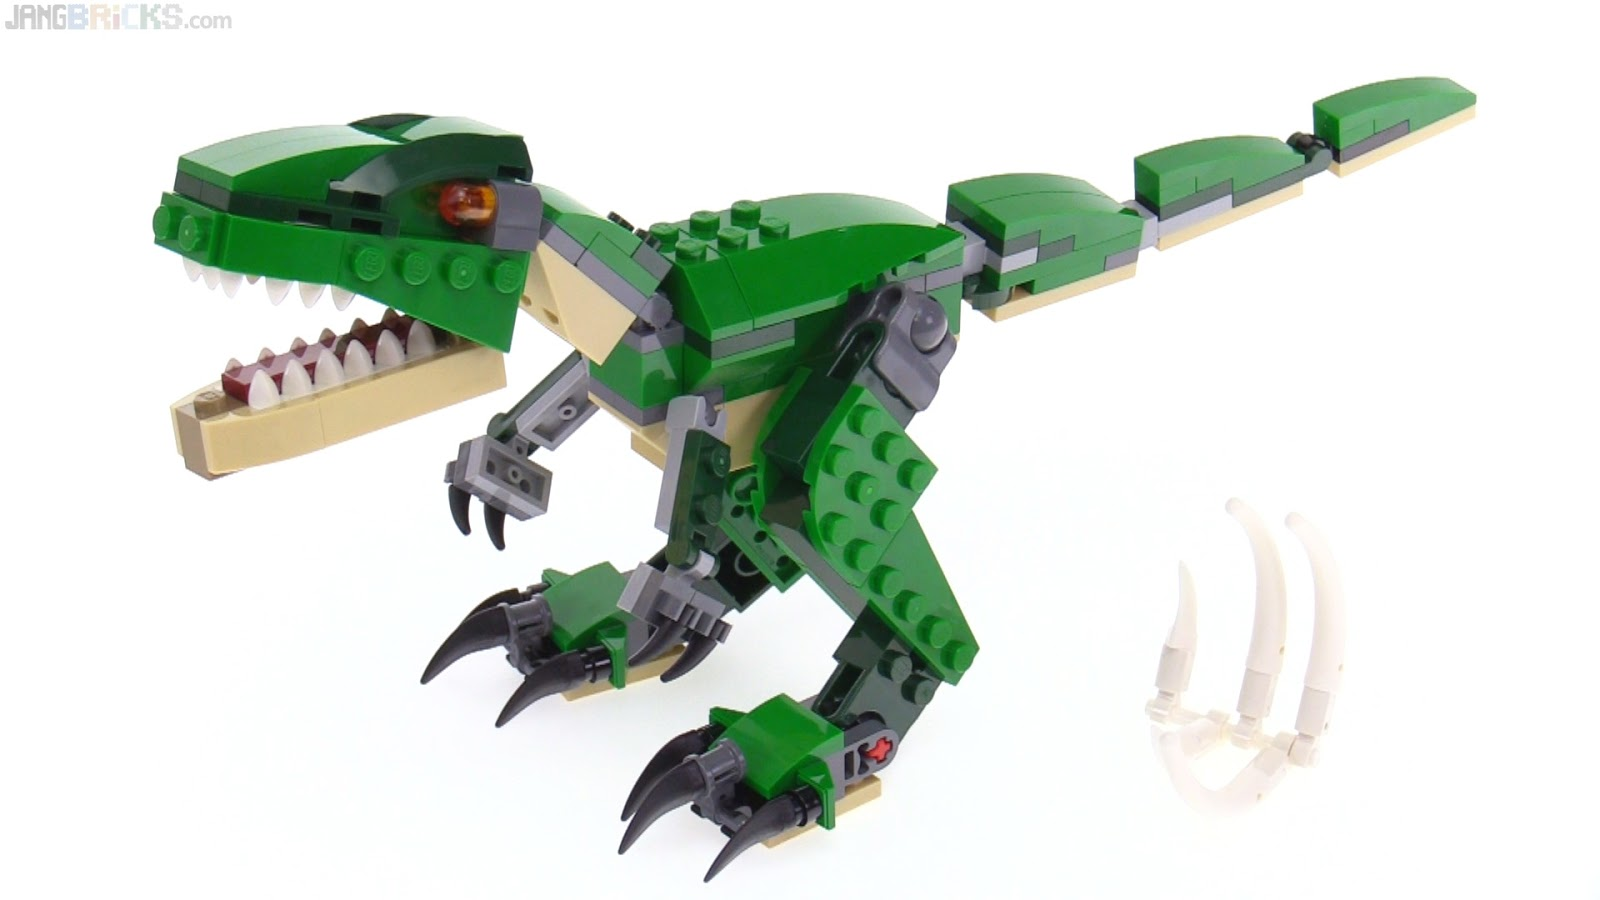 Lego creator 3 in 1 mighty dinosaurs review 31058 - Lego dinosaures ...